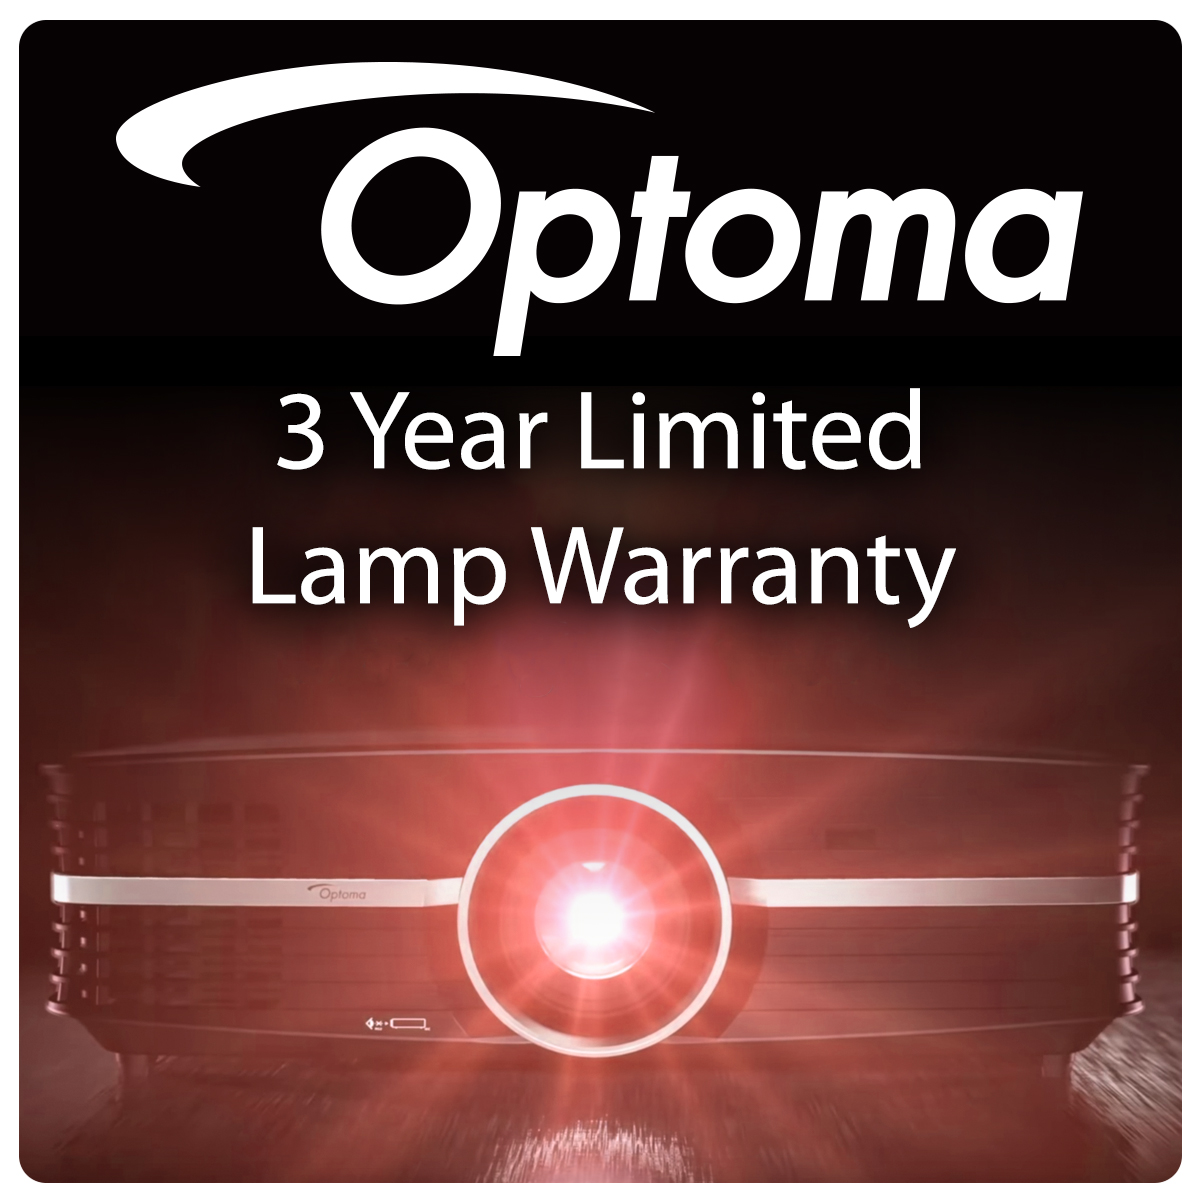 Optoma 3 Year Limited Lamp Warranty